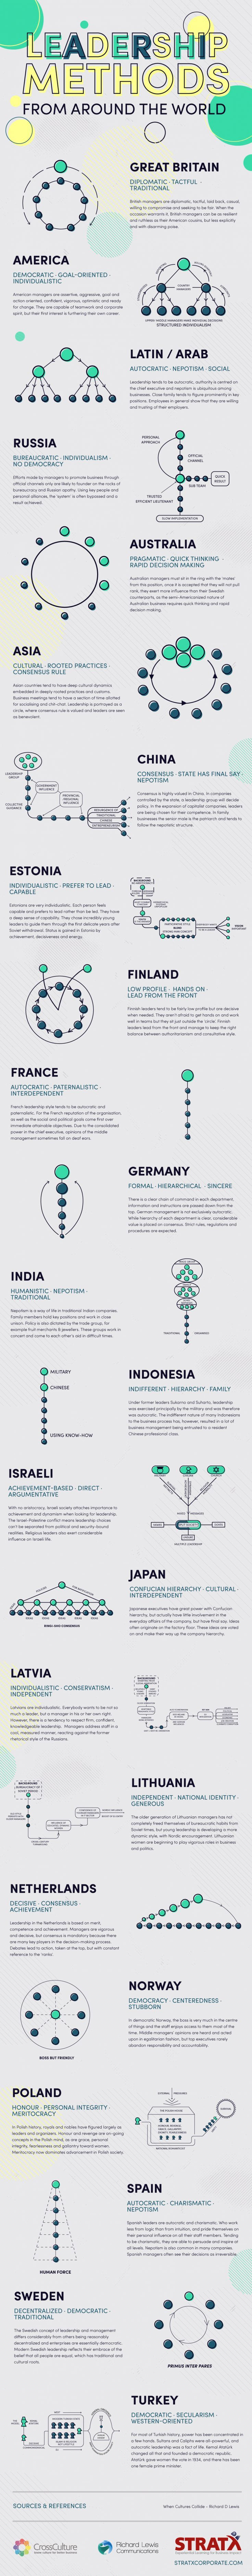 Leadership Methods from Around the World #Infographic (scheduled via http://www.tailwindapp.com?utm_source=pinterest&utm_medium=twpin&utm_content=post102153749&utm_campaign=scheduler_attribution)